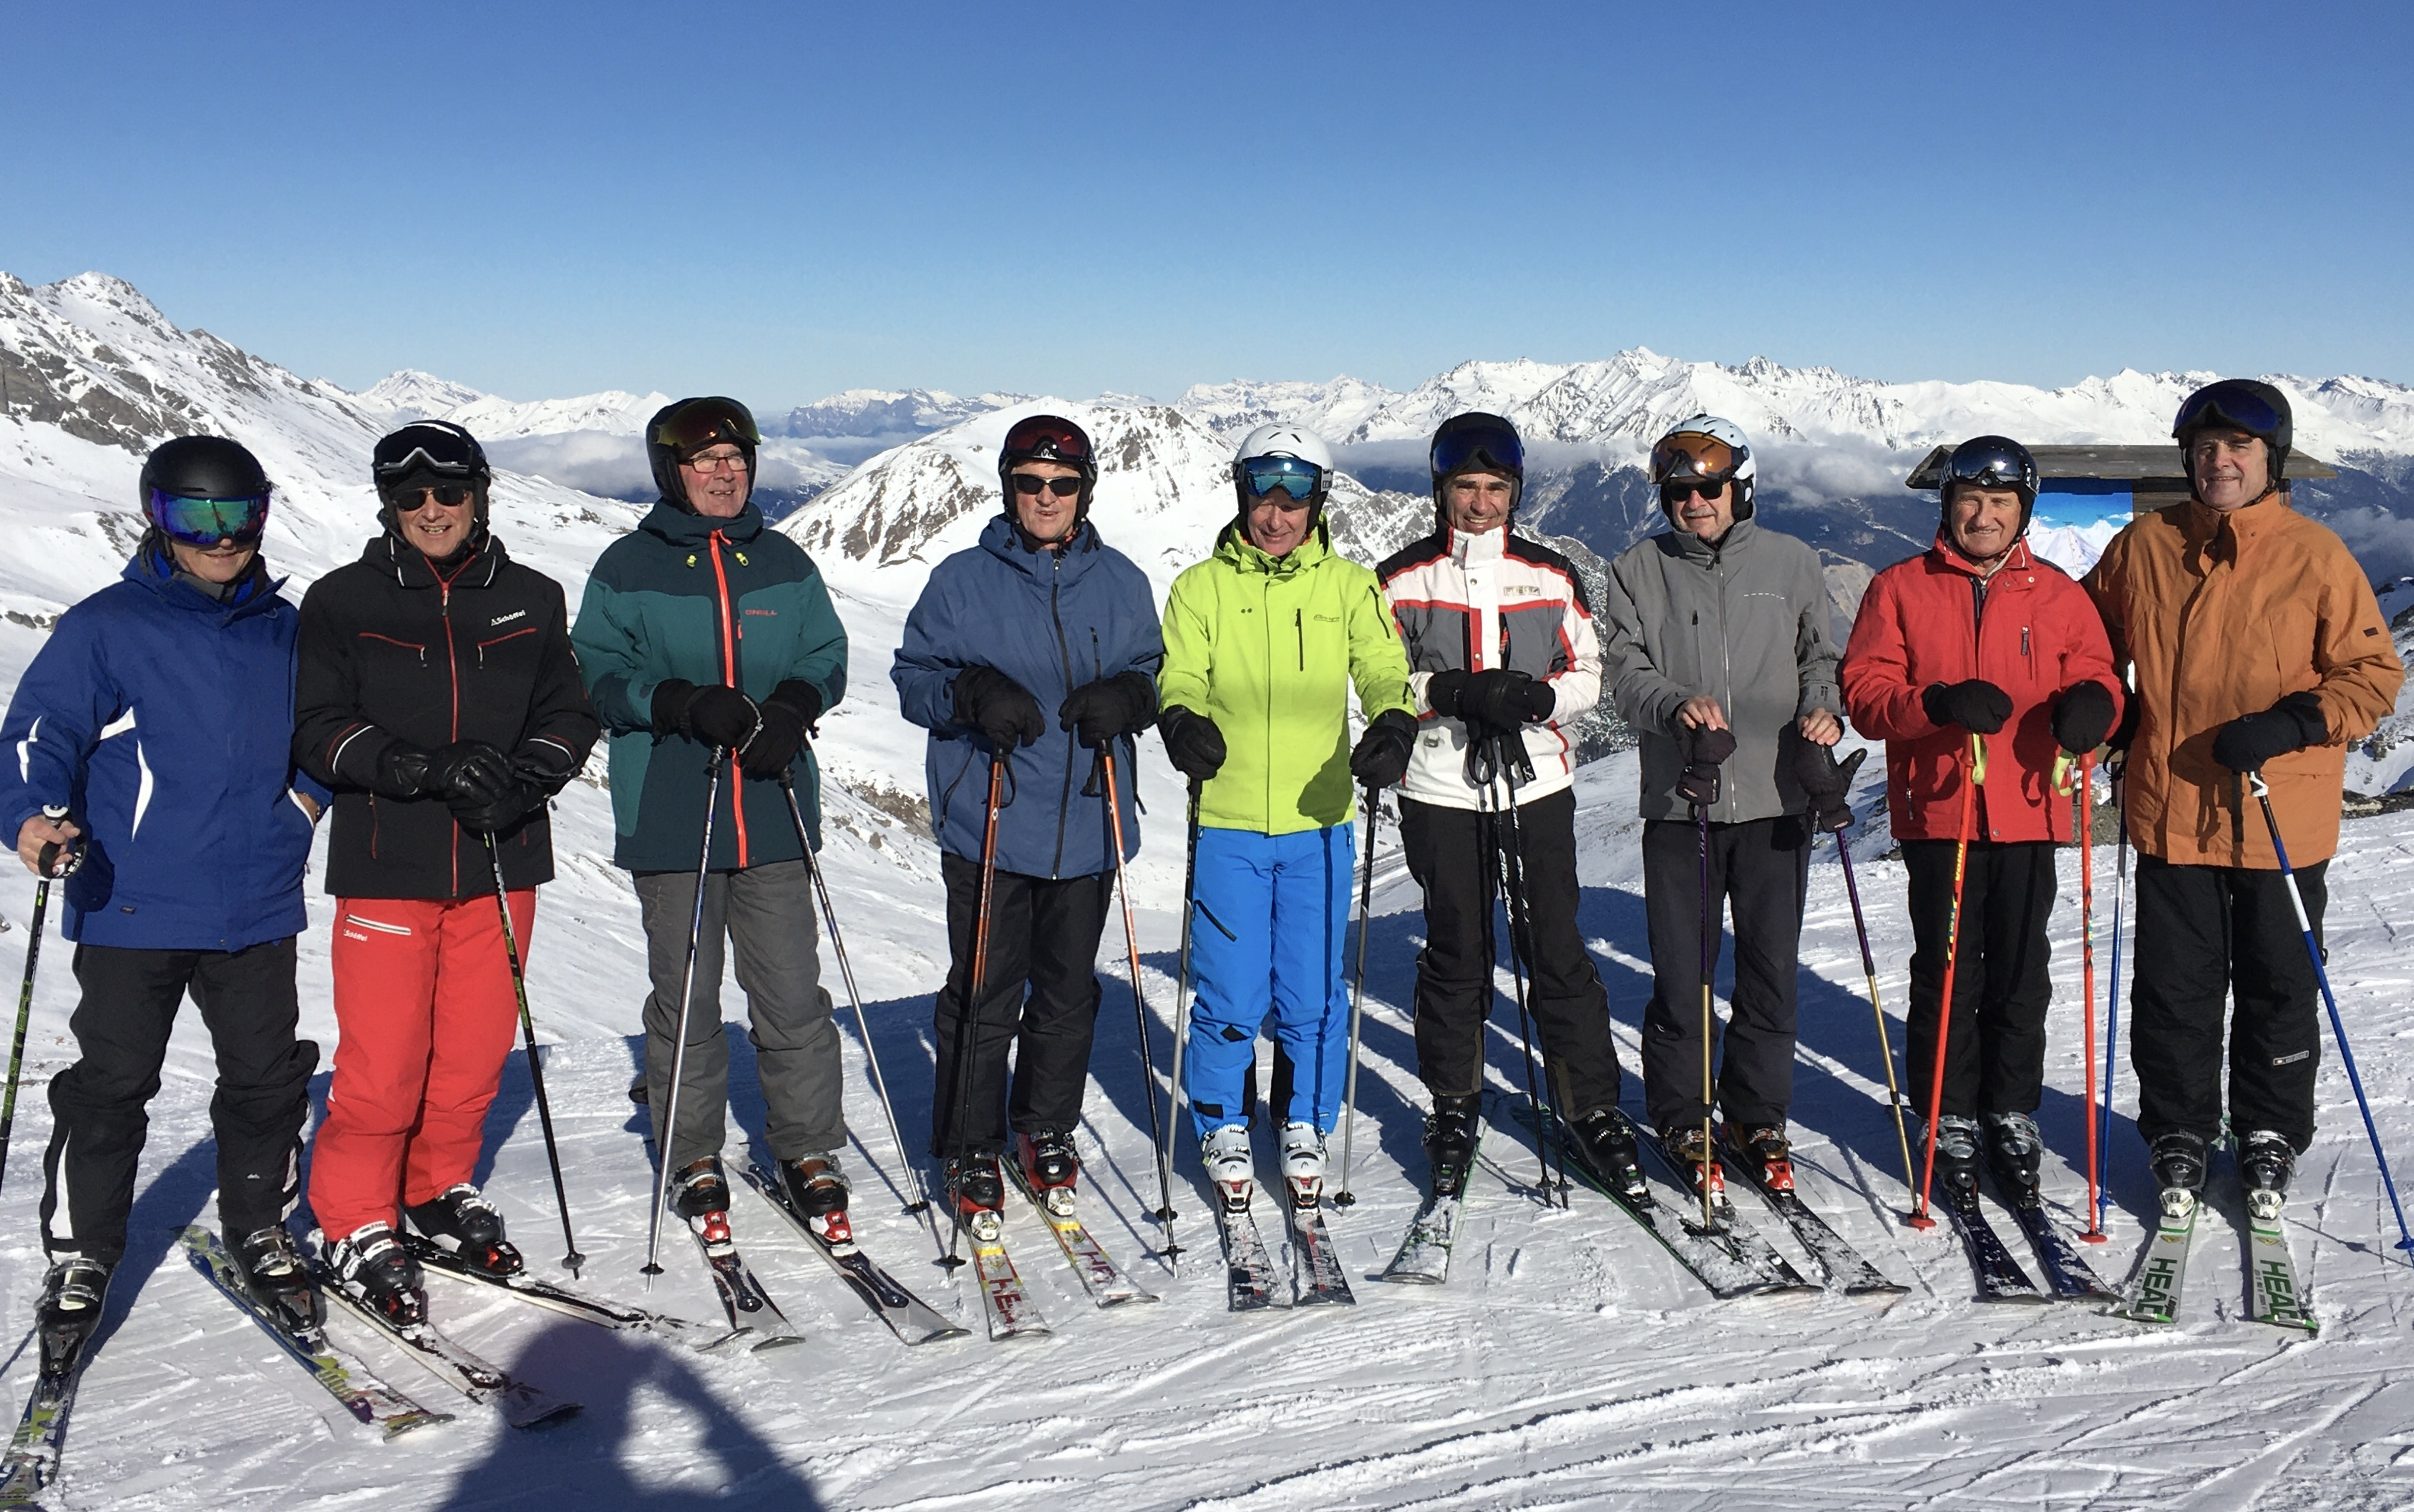 Ski-Weekend 19/20 in Savognin